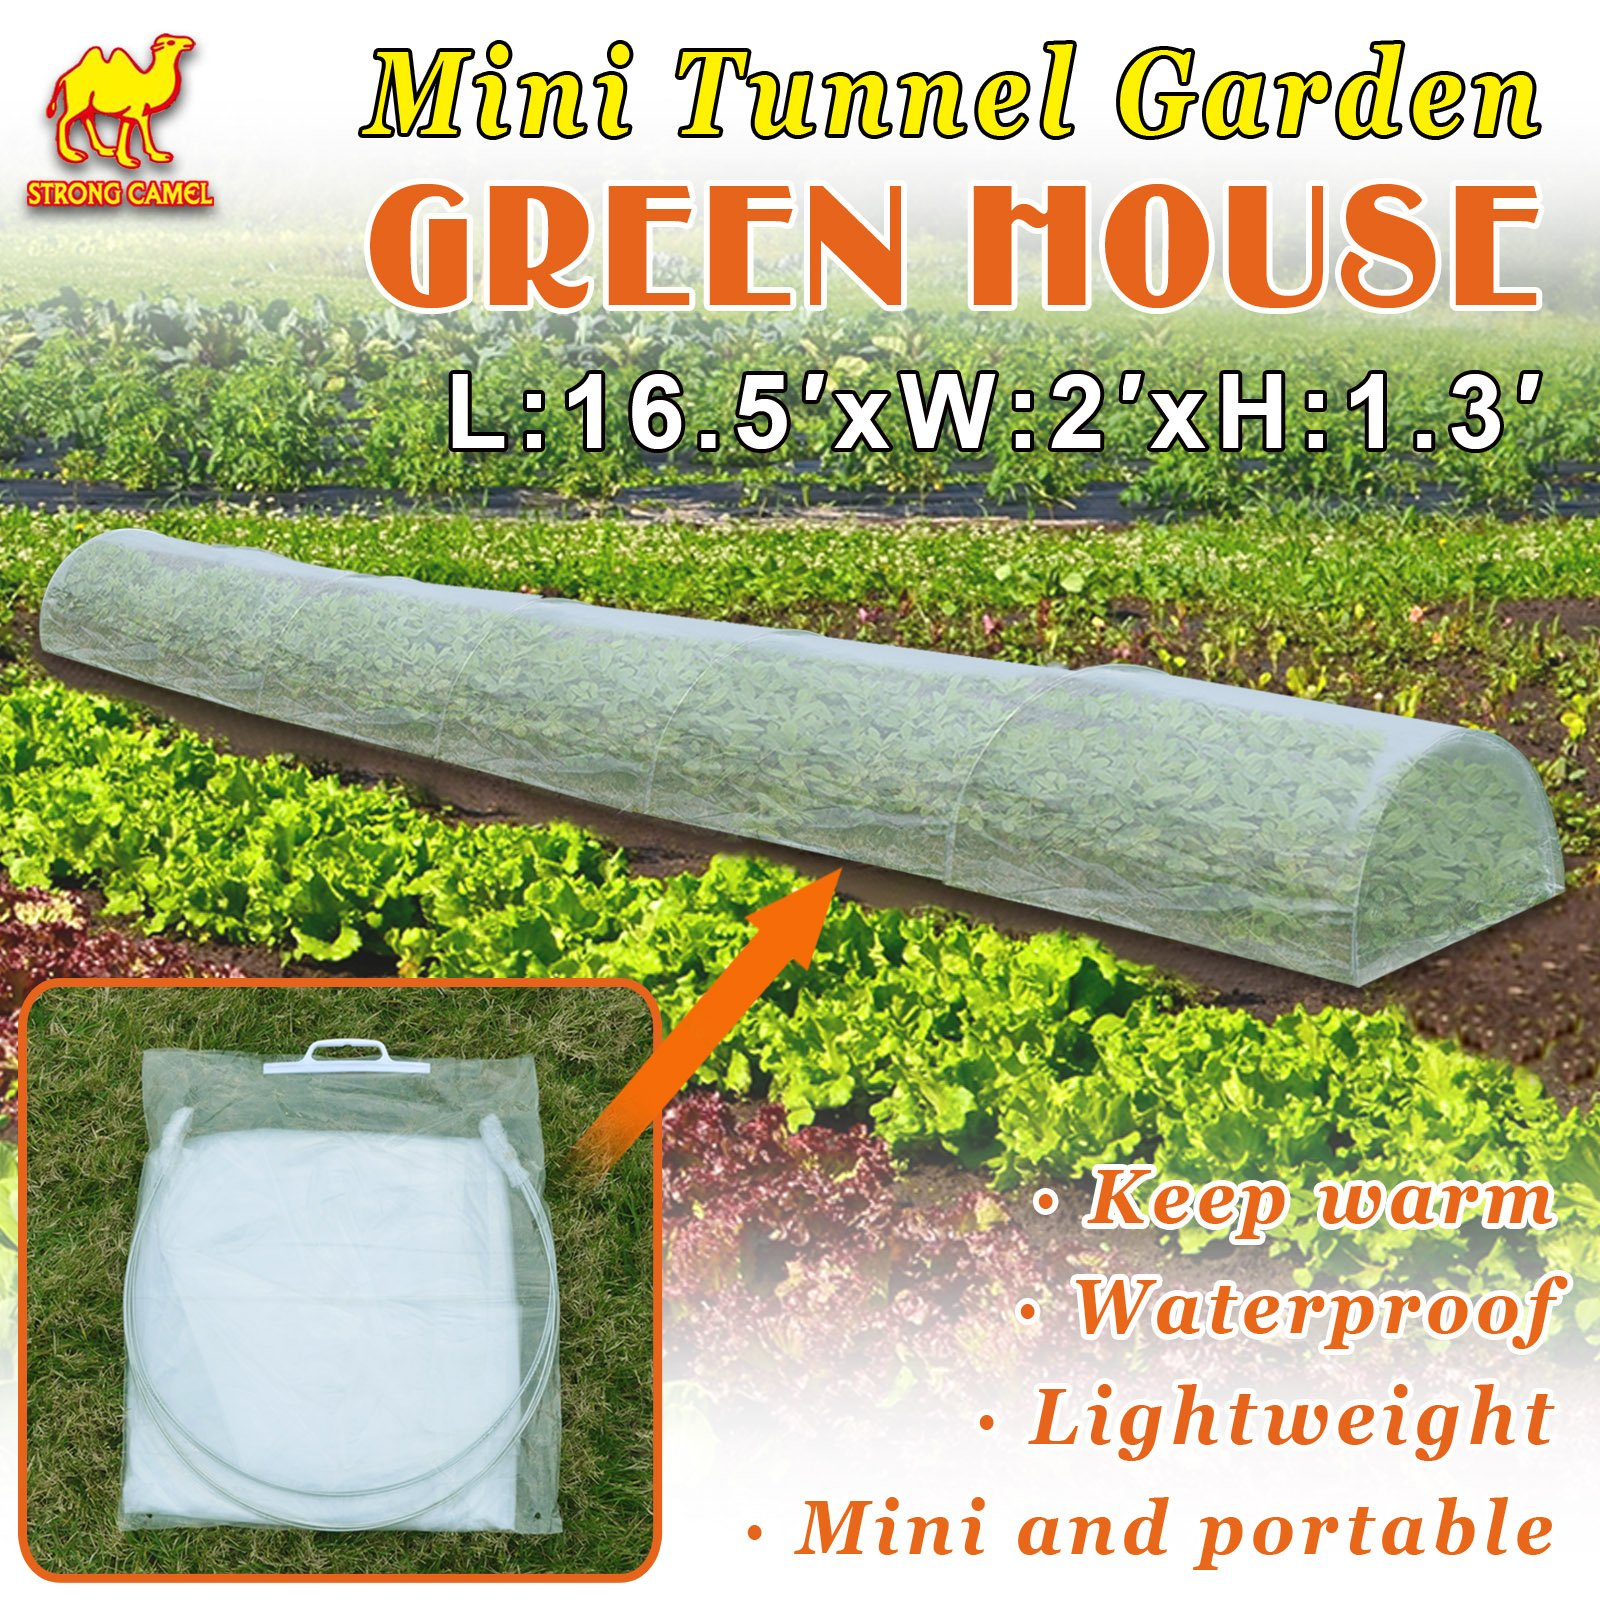 Strong Camel 16.5' x 2' x 1.3' Easy Poly Plant Grow Tunnel Greenhouse Garden